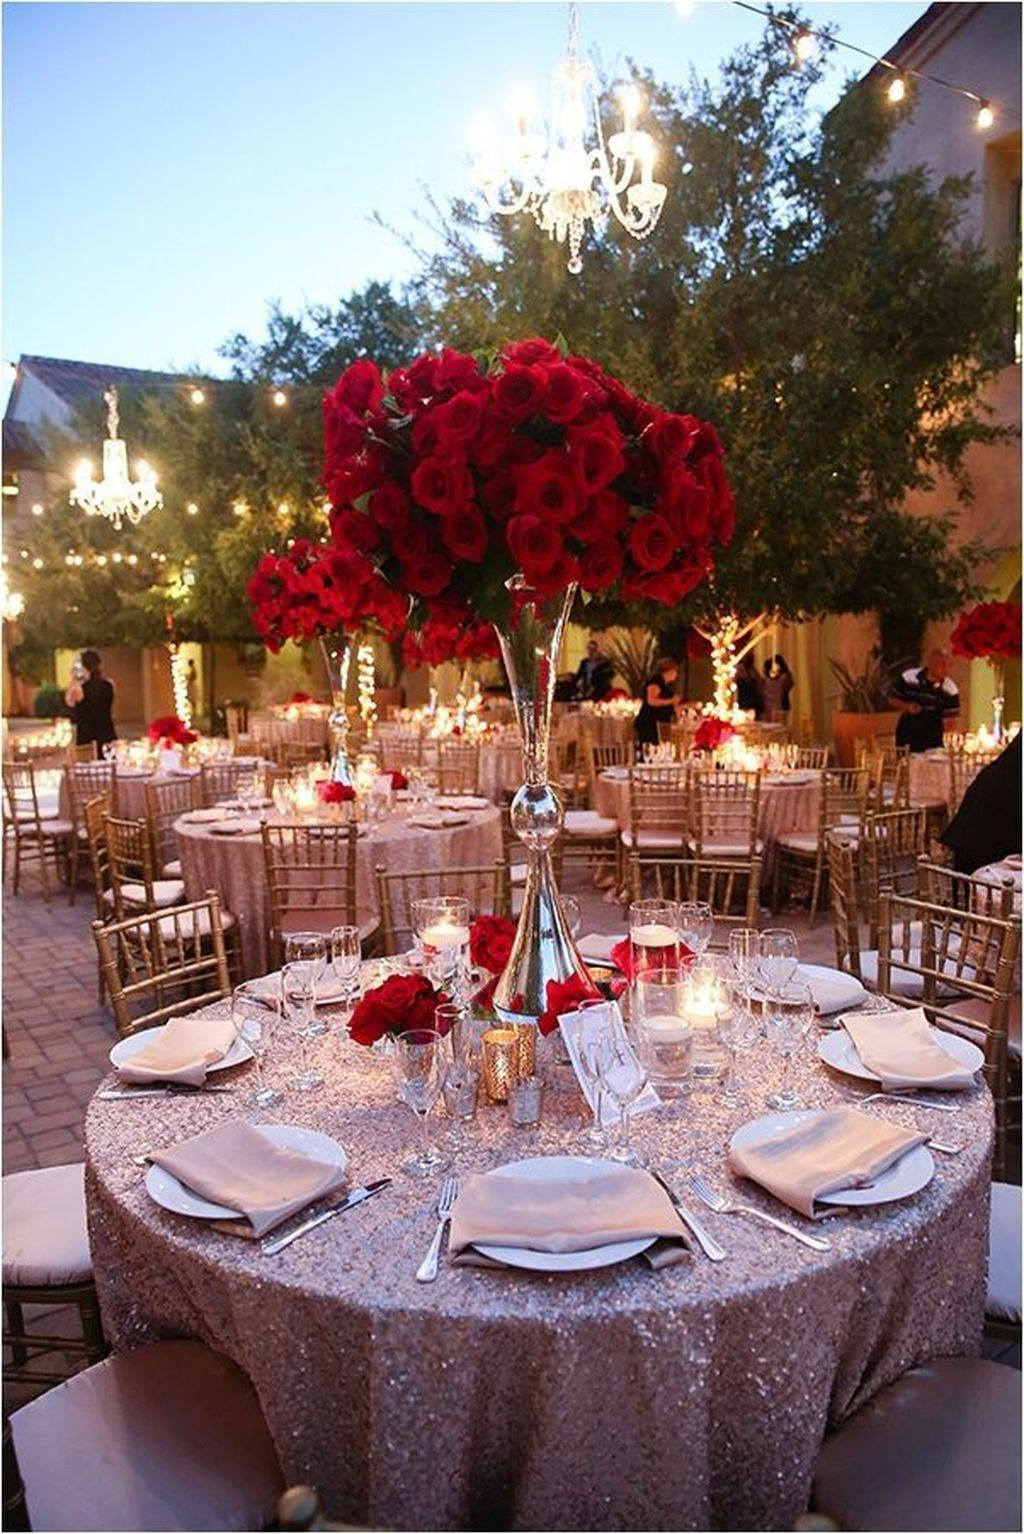 Affordable Wedding Centerpieces Ideas On A Budget22 Red Wedding